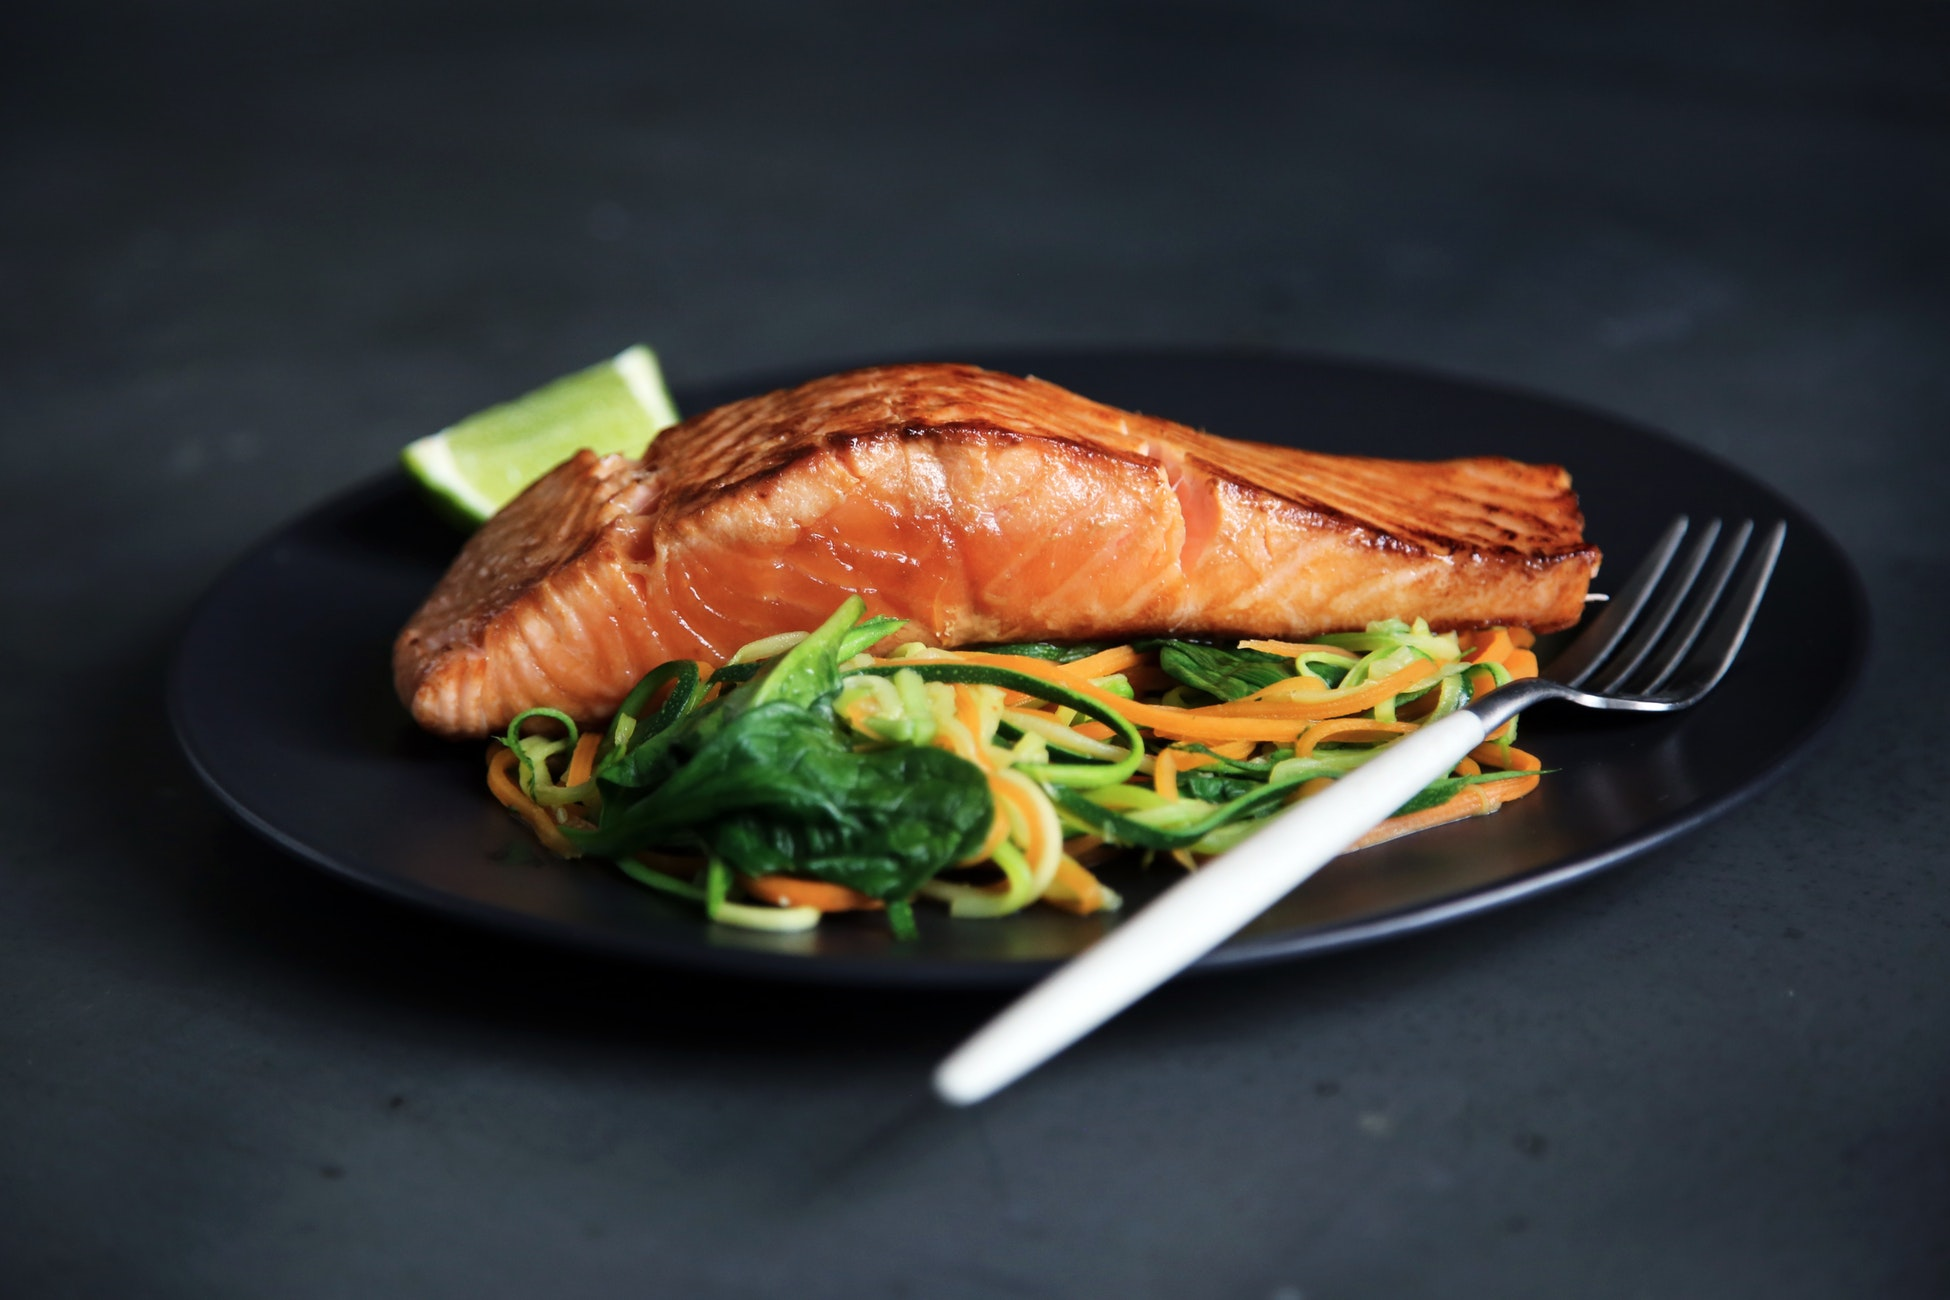 Oily fish are full of omega-3 fatty acids that are good for your heart.